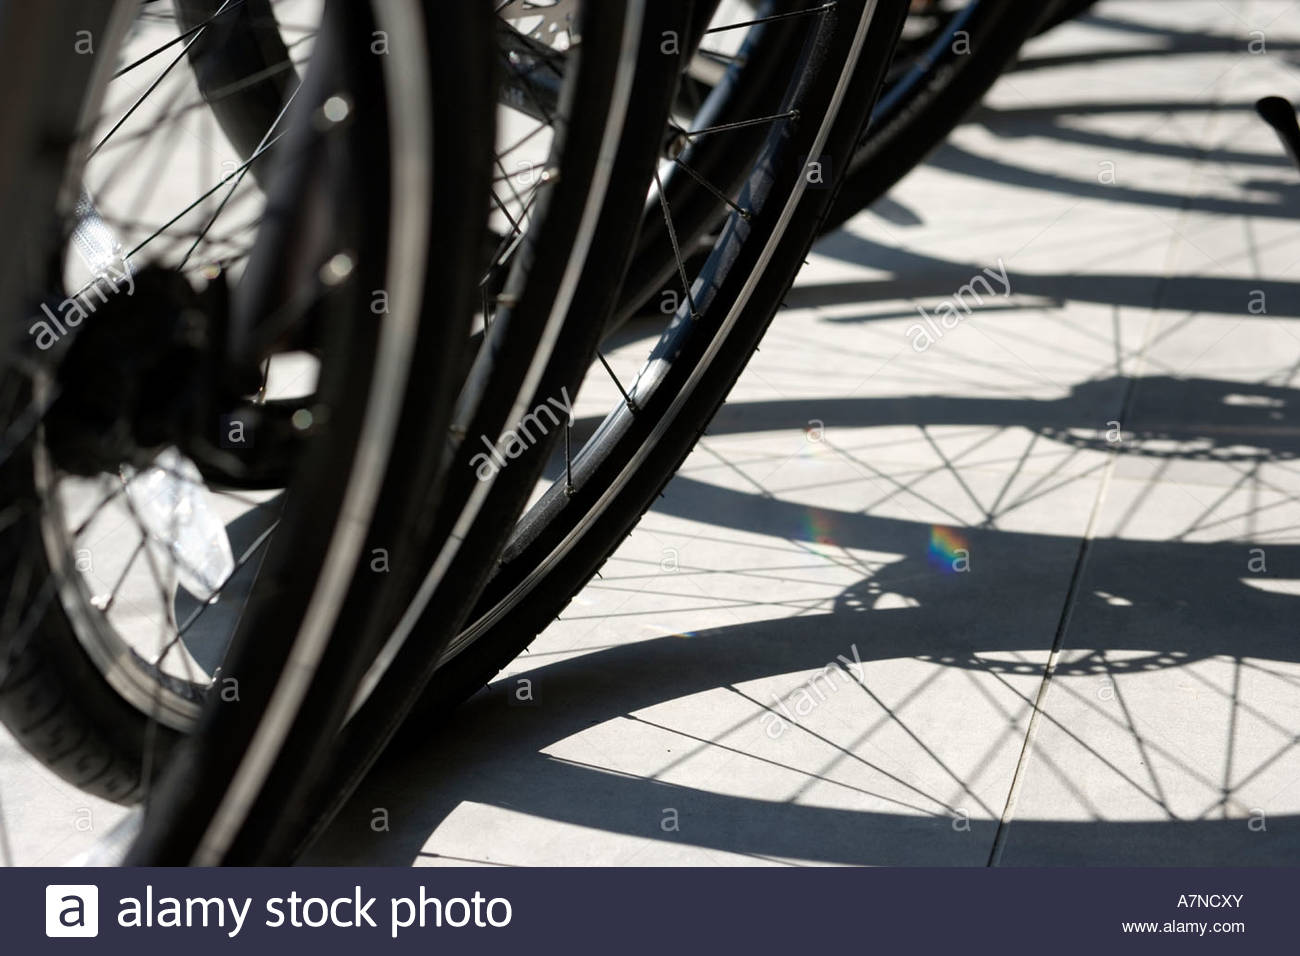 Row of bicycles shadow on ground focus on wheels close up low section - Stock Image